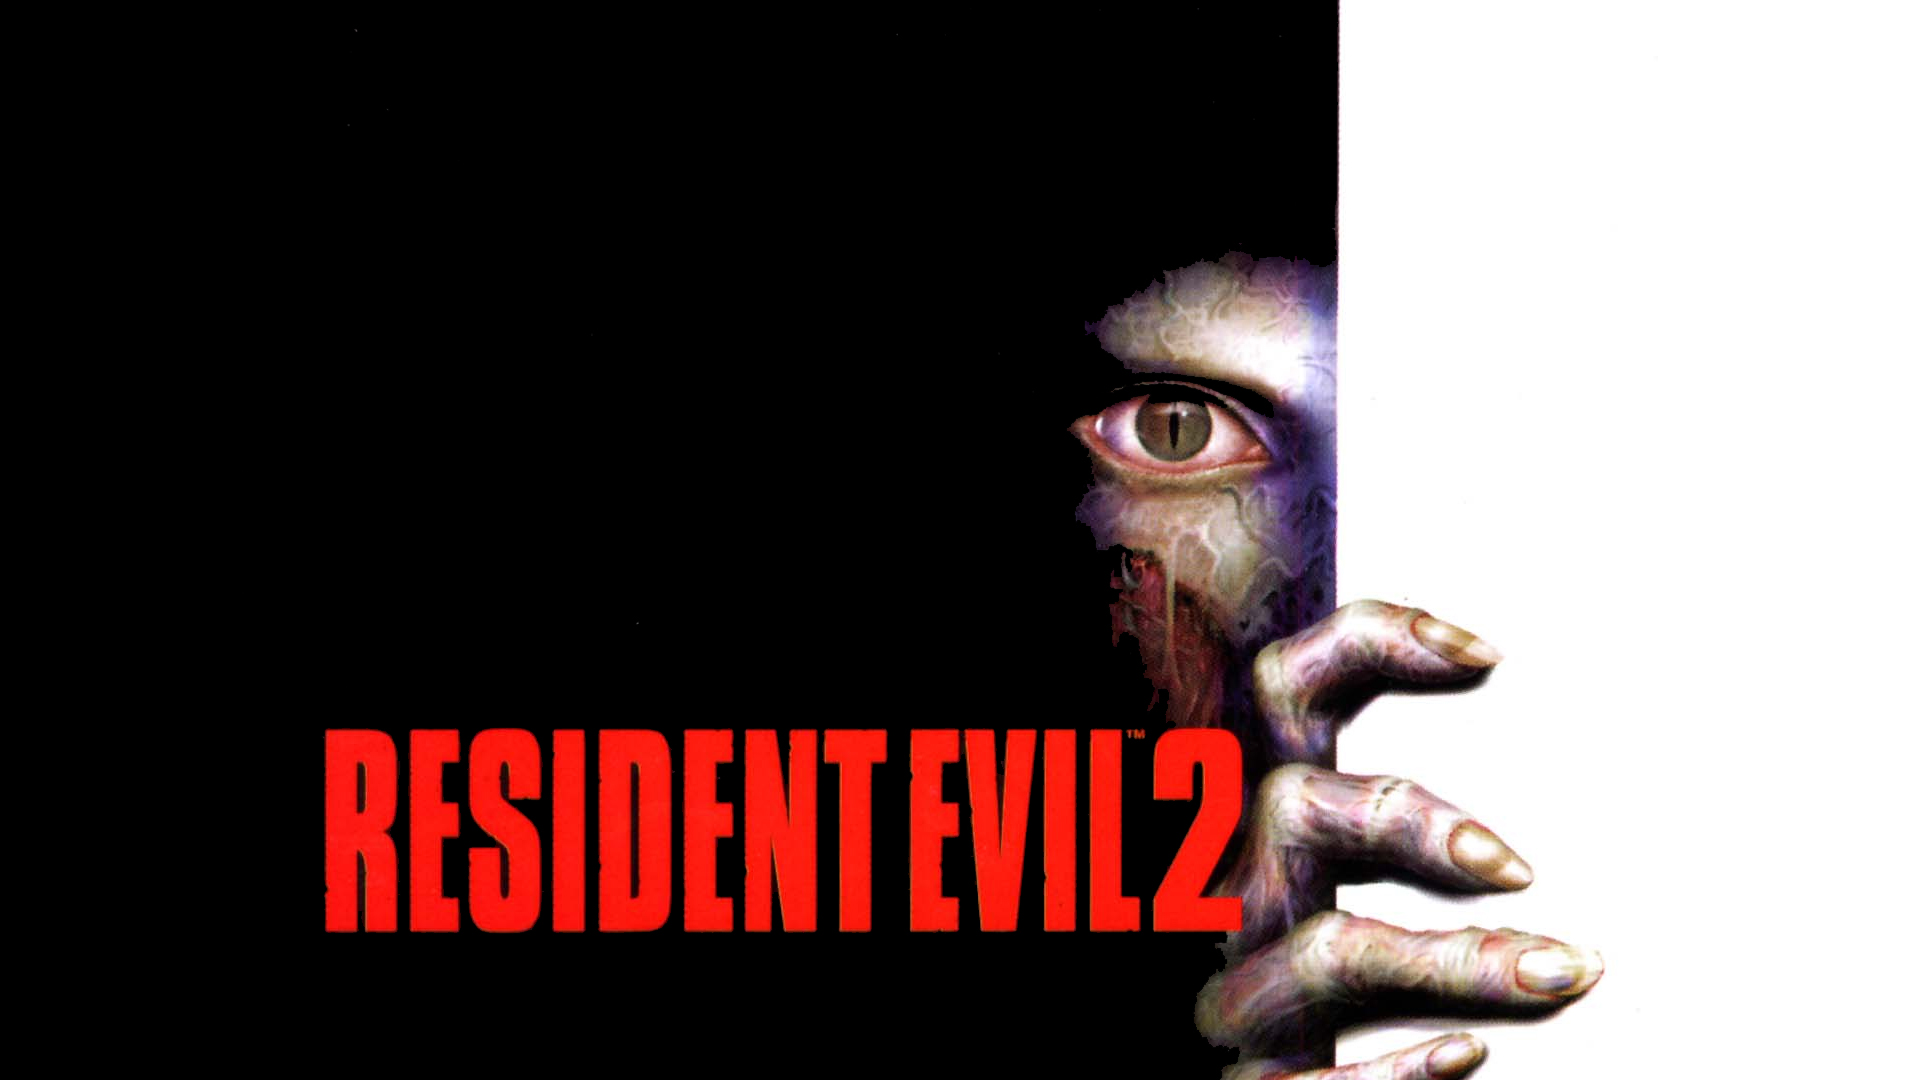 Your Five Most Influential Games (A TOH-Inspired Thread) Residentevil2